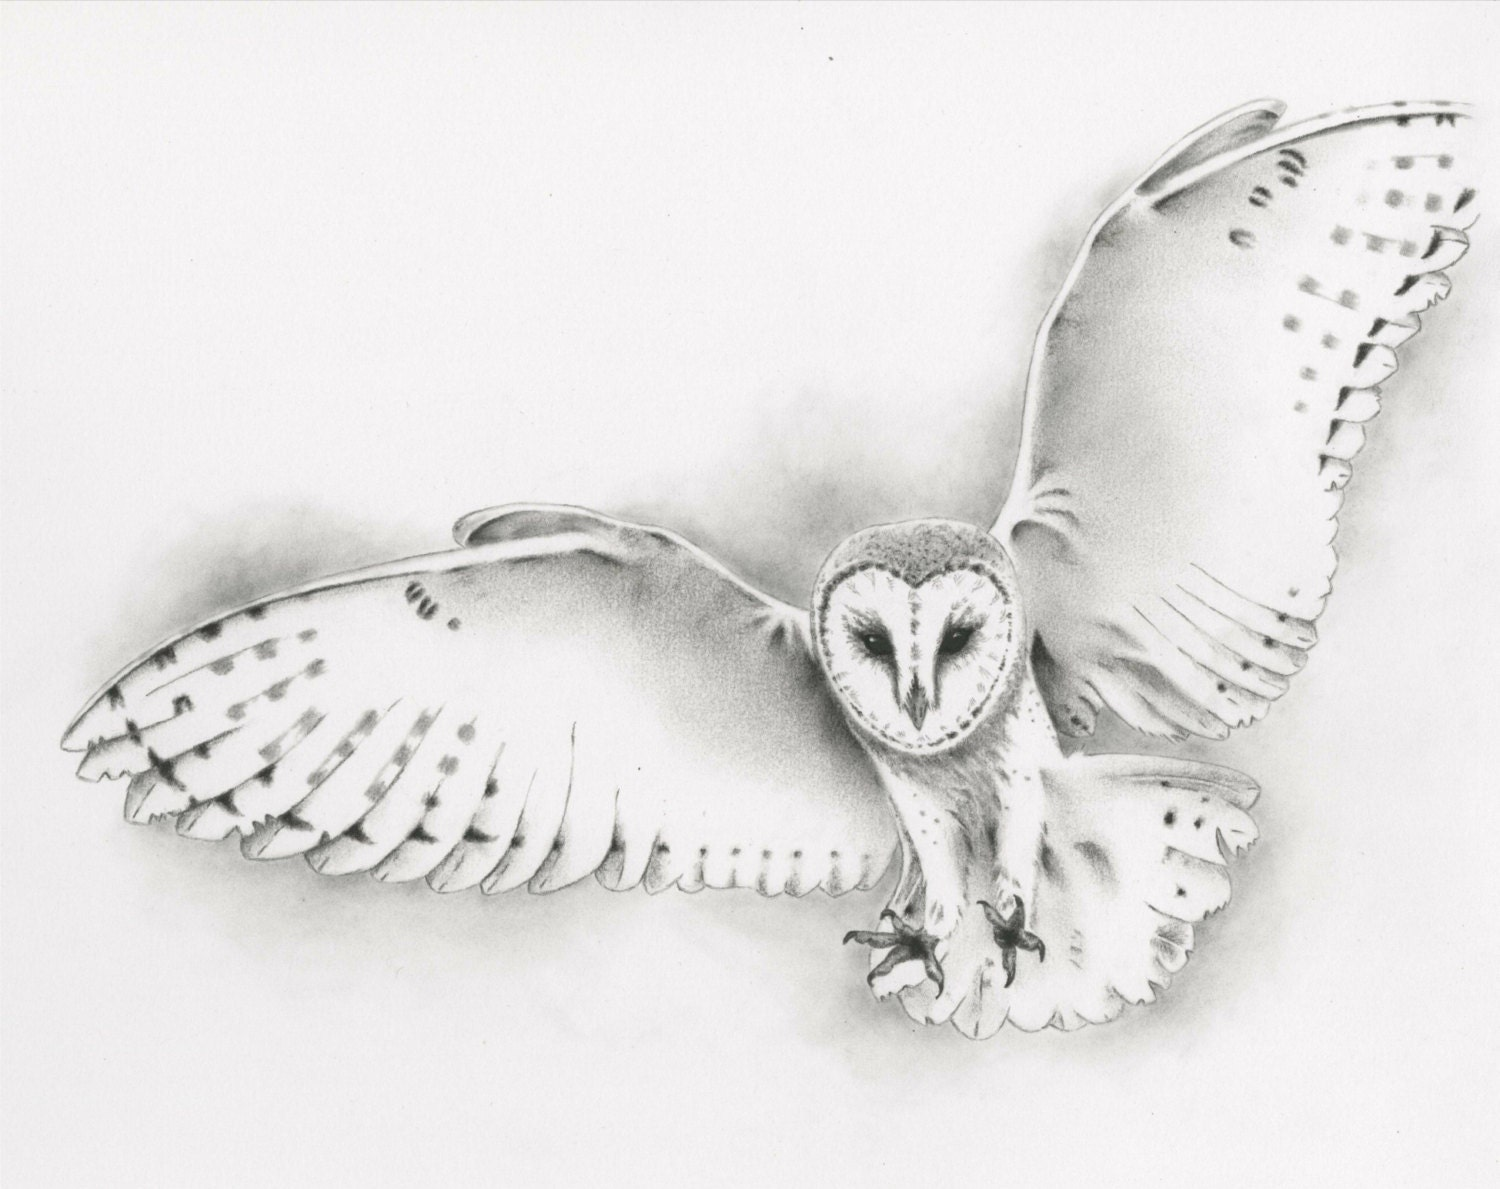 Flying owl pencil drawings - photo#6